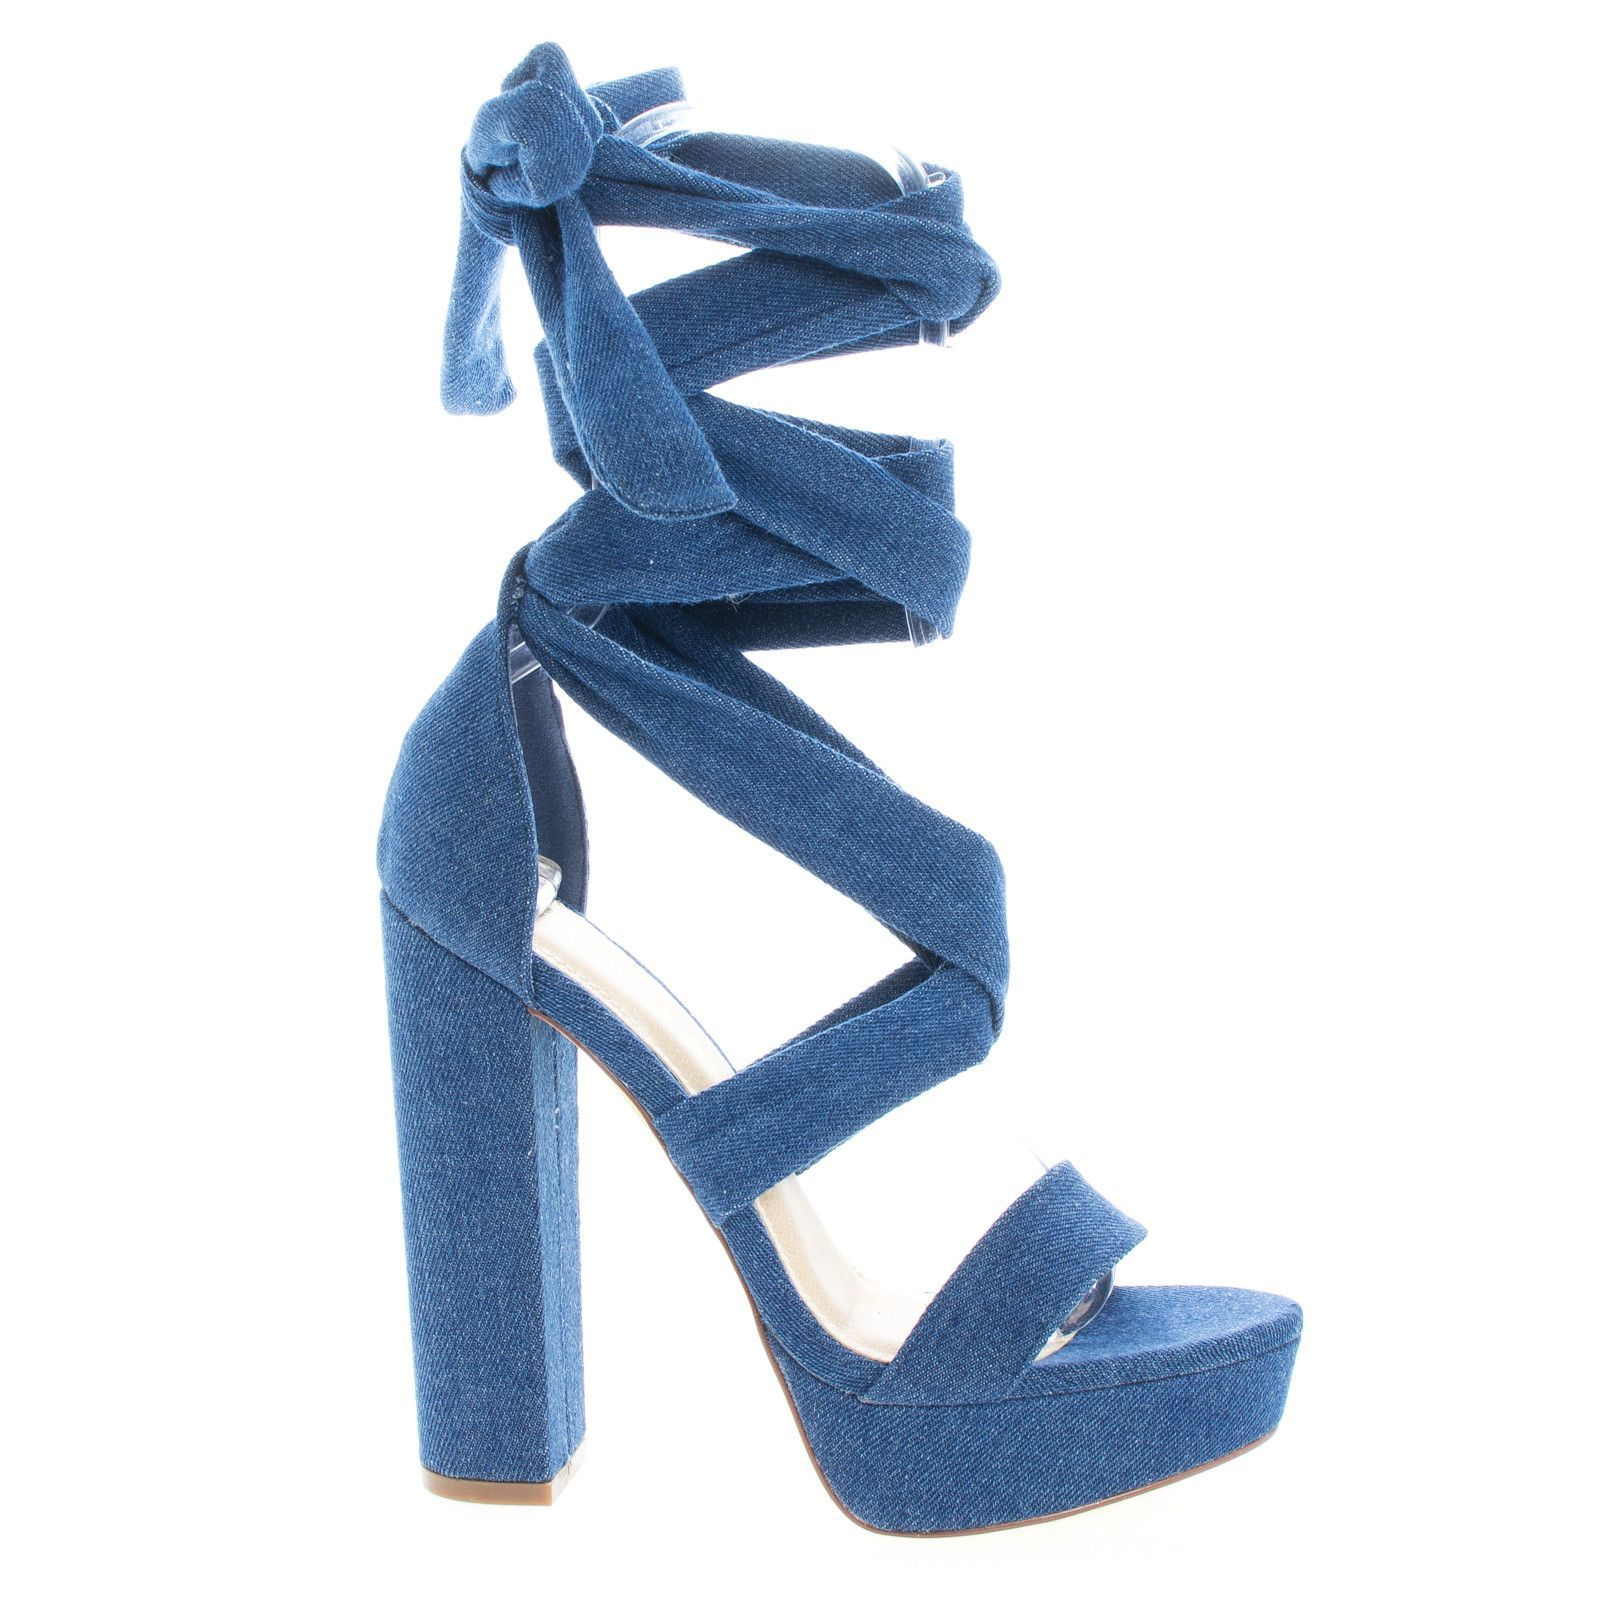 7e5a15968efe This platform sandal features a thick wrap around crisscrossing lace with 5.5  inch chunky block heel and a 1 inch platform. (Please note that these ...